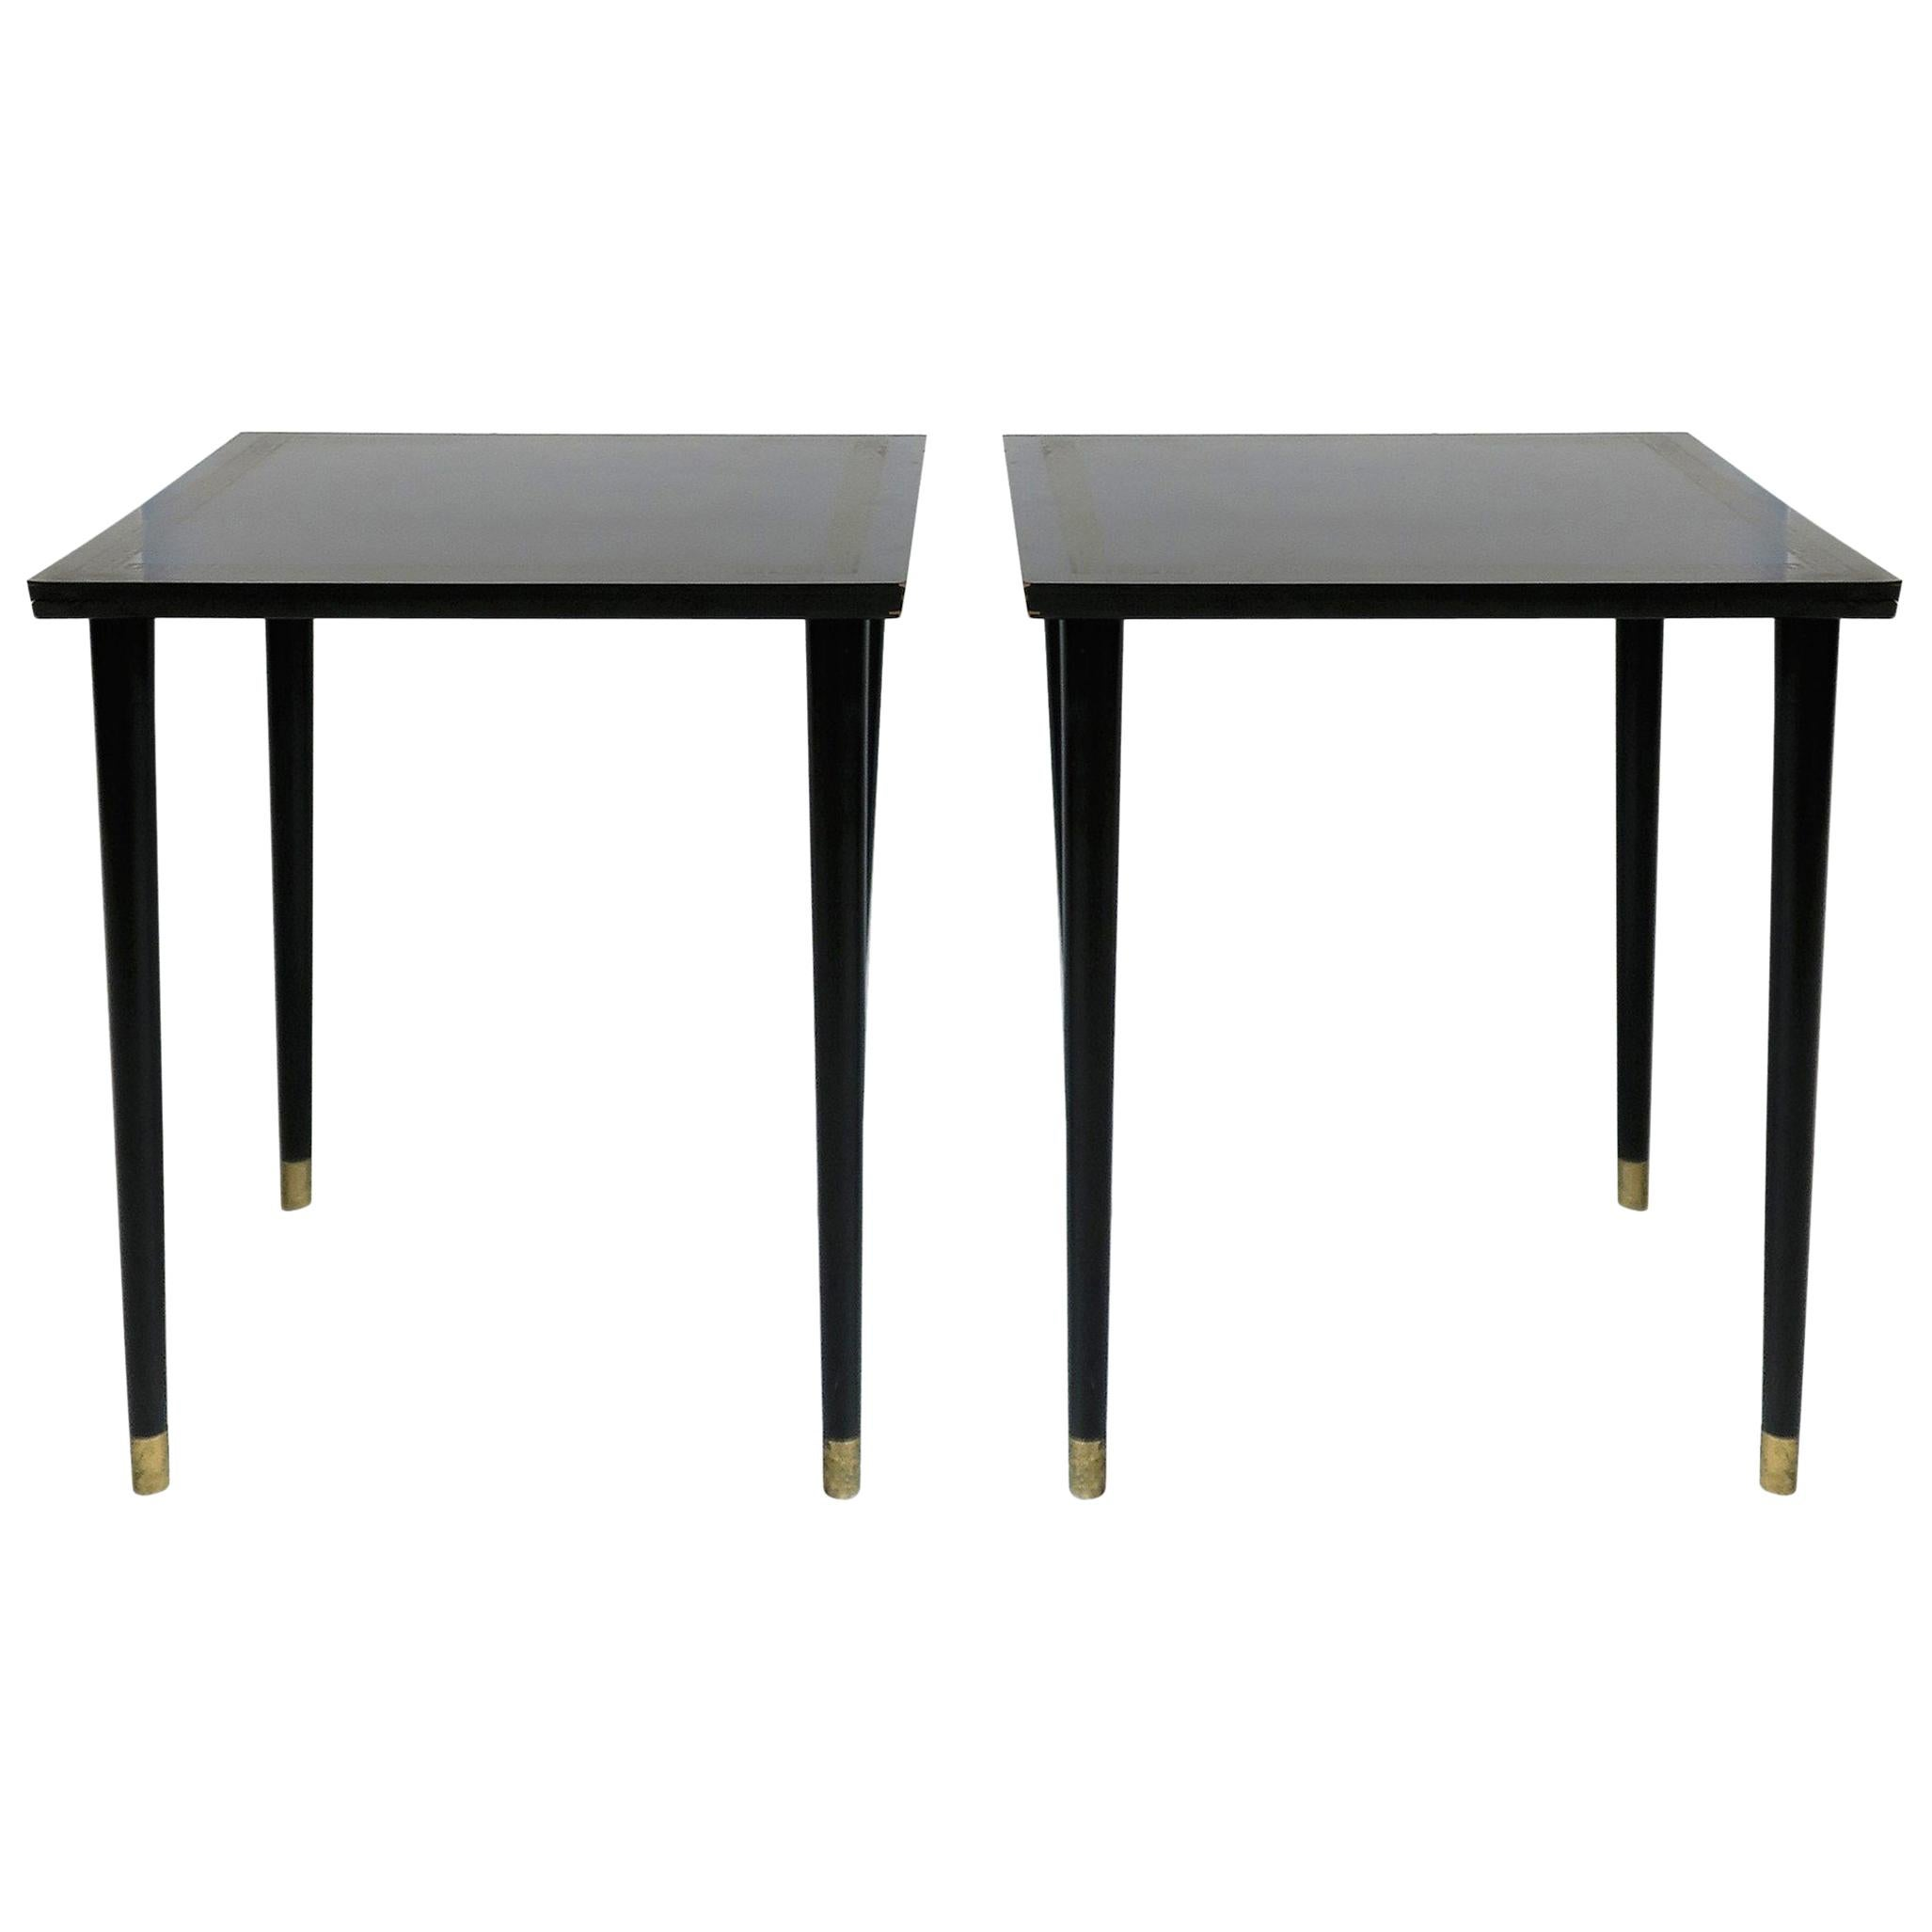 Black Side Tables Nesting or Stacking